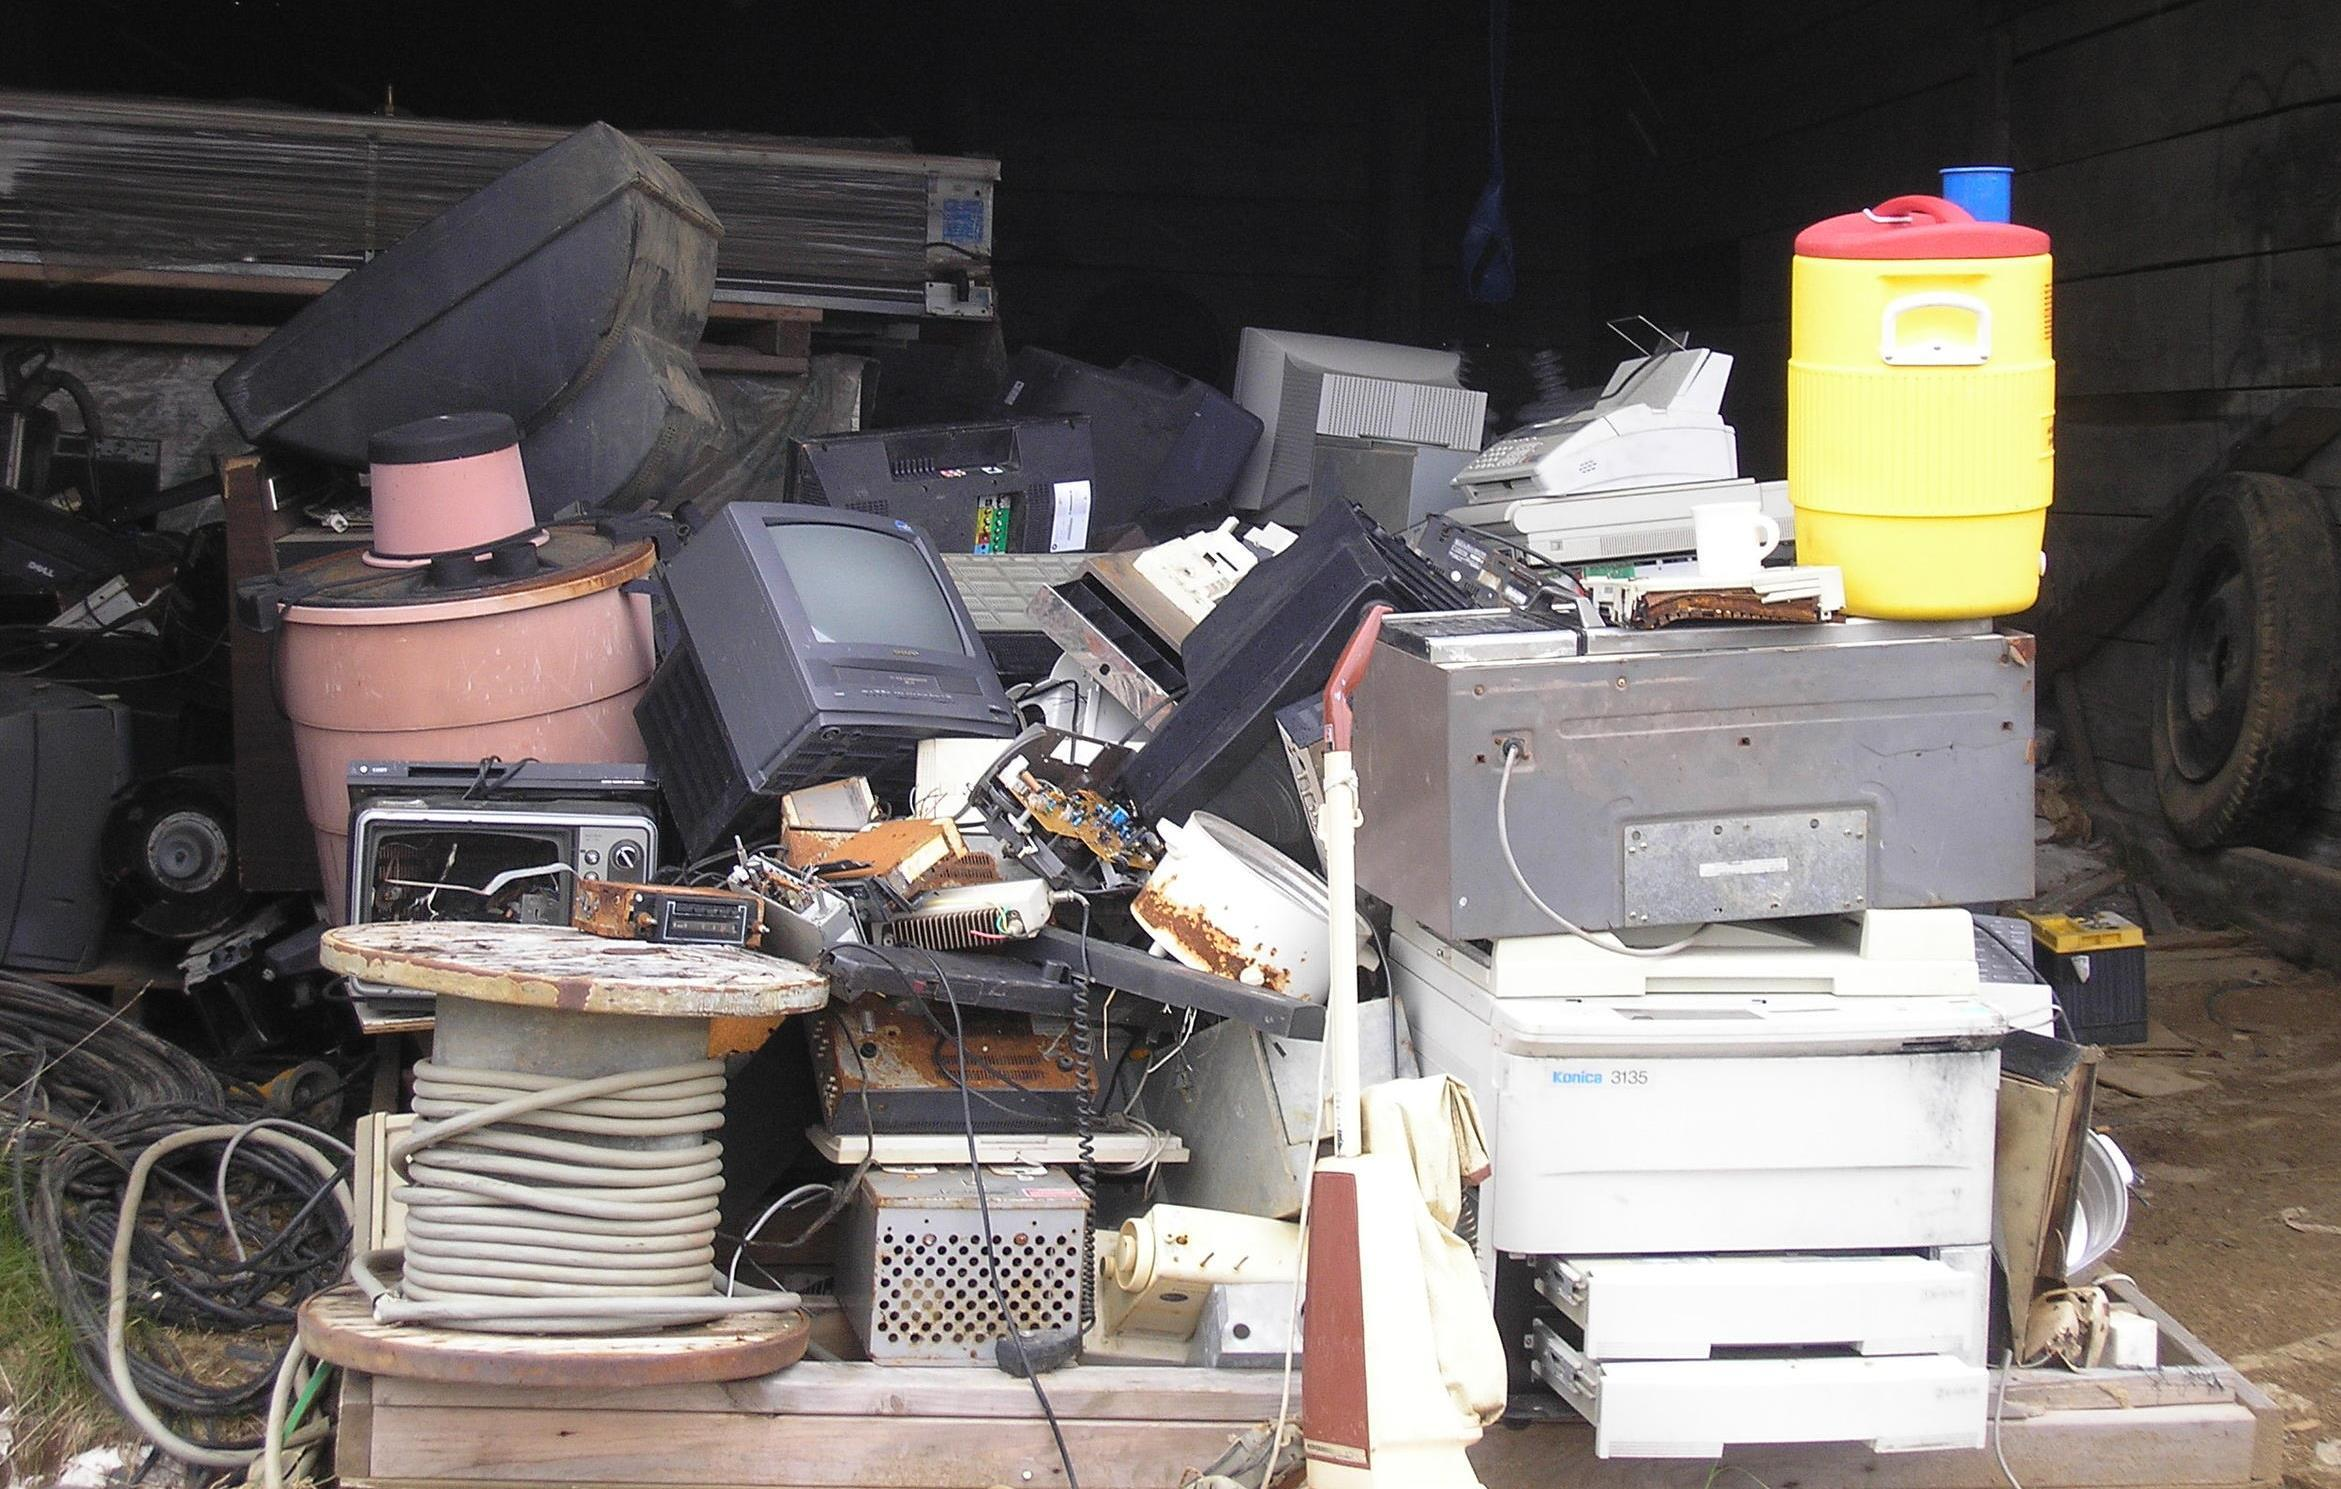 Anchorage Recycling Center >> Organizations Plan New Junk Cleanups in Villages as Programs Face EPA Funding Cuts | KUAC